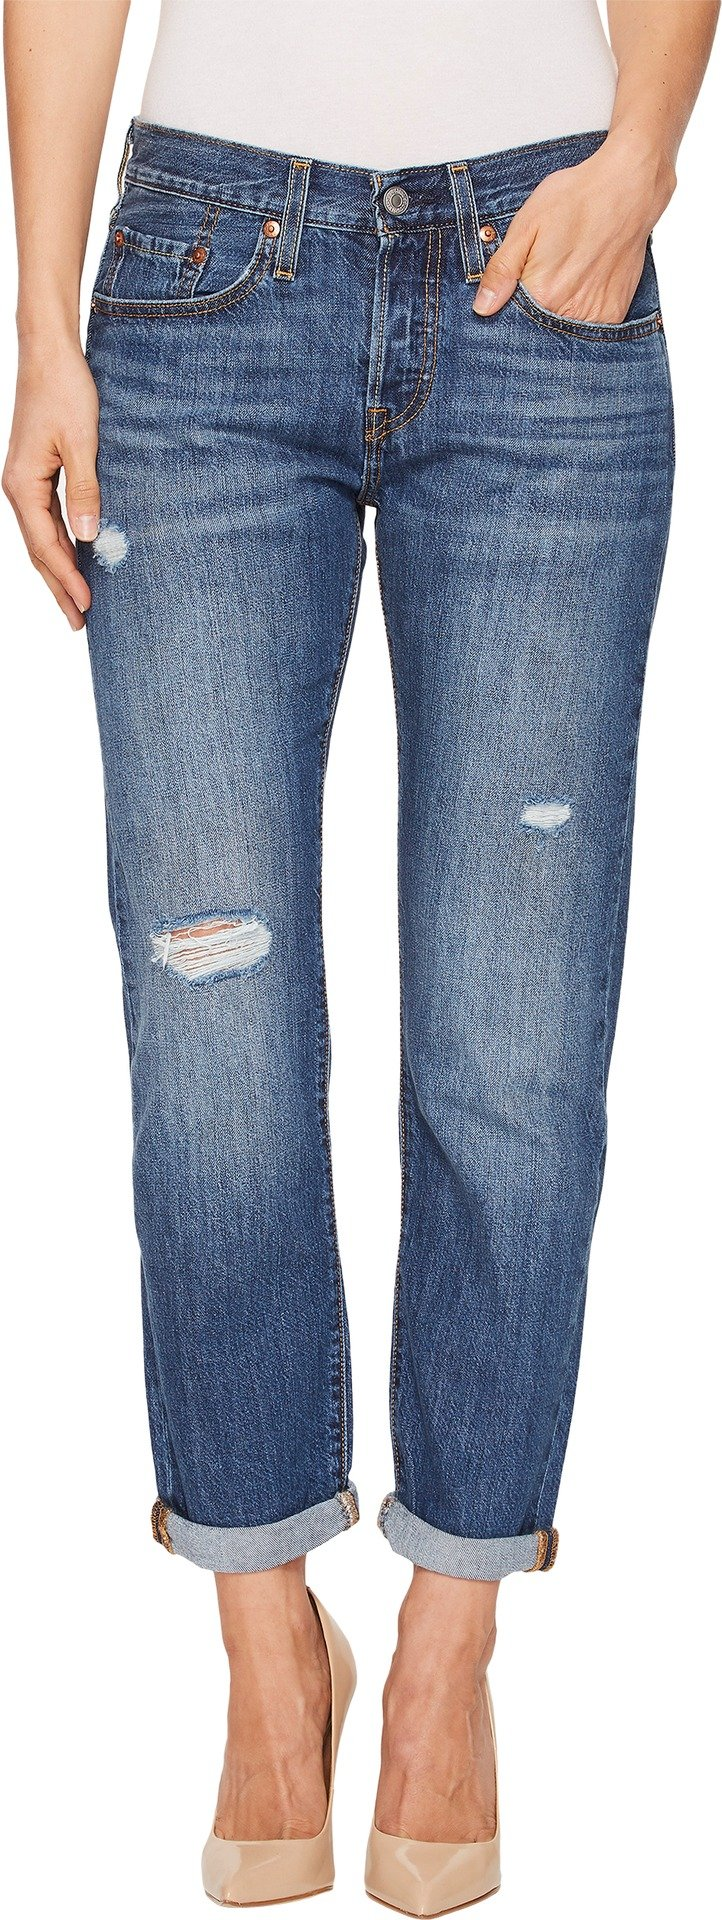 Levi's Women's 501 Taper Jeans, Simple Life, 28 (US 6) by Levi's (Image #1)